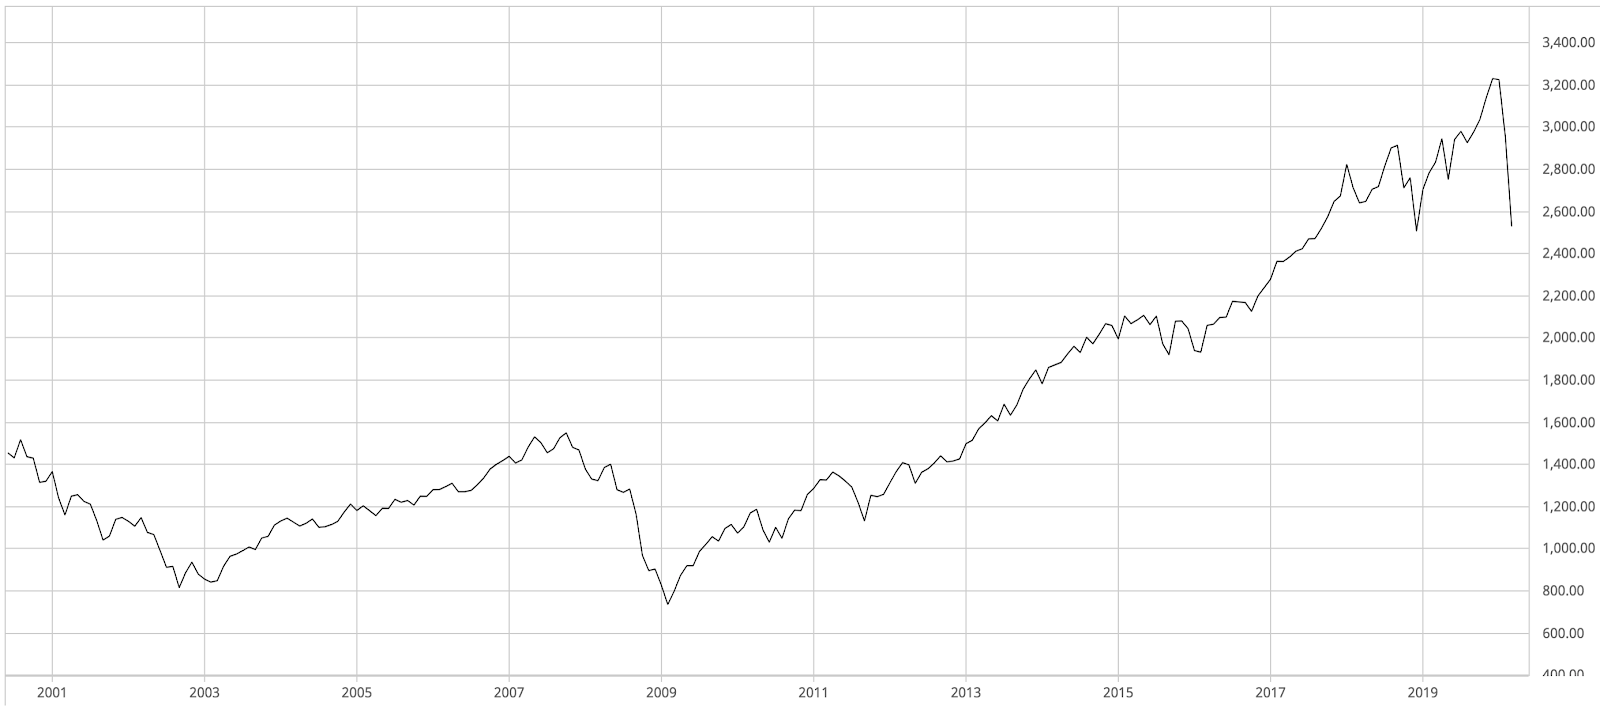 20 Year graph of the S&P 500 between March 2000 and March 2020